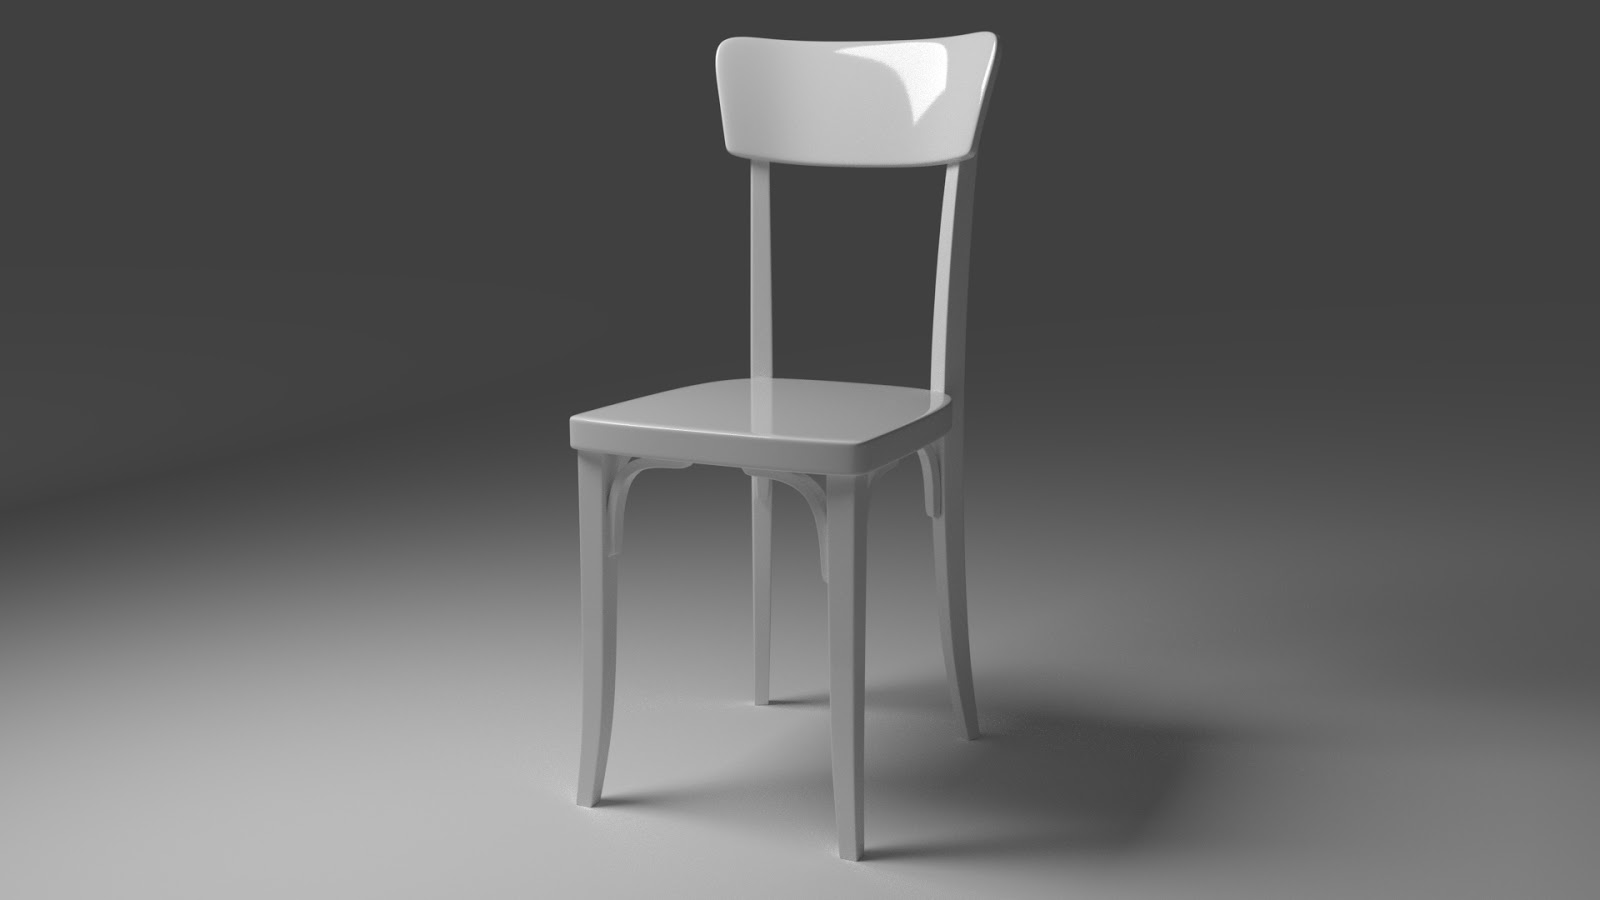 Free 3D White Classic Chair .blend file